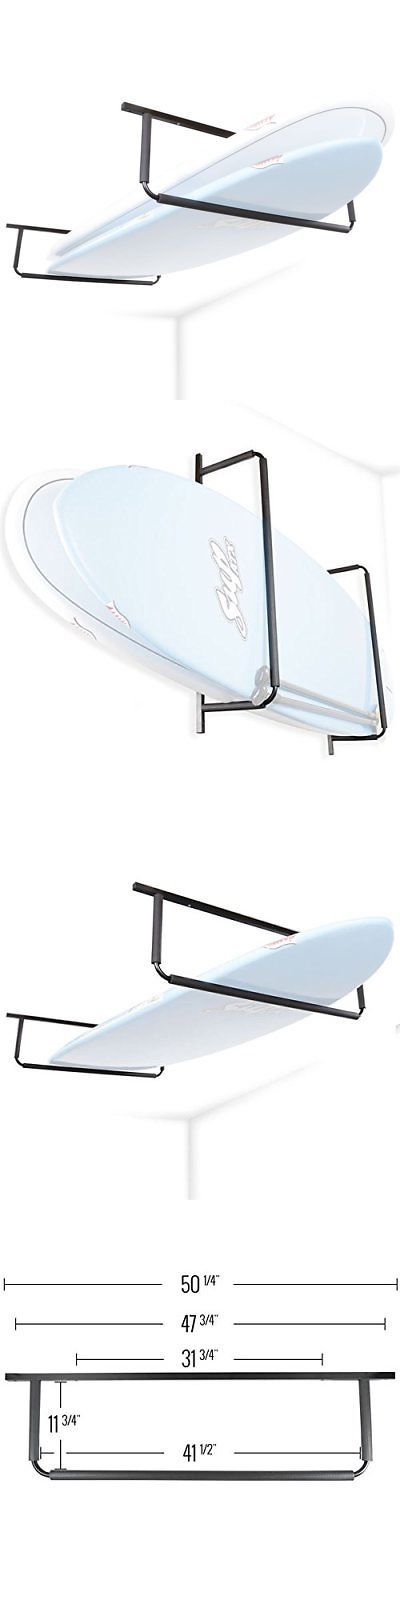 Accessories 177506: Sup Stand-Up Paddle Board Overhead Storage Rack 16 Or 24 On Center Storage -> BUY IT NOW ONLY: $53.26 on eBay!